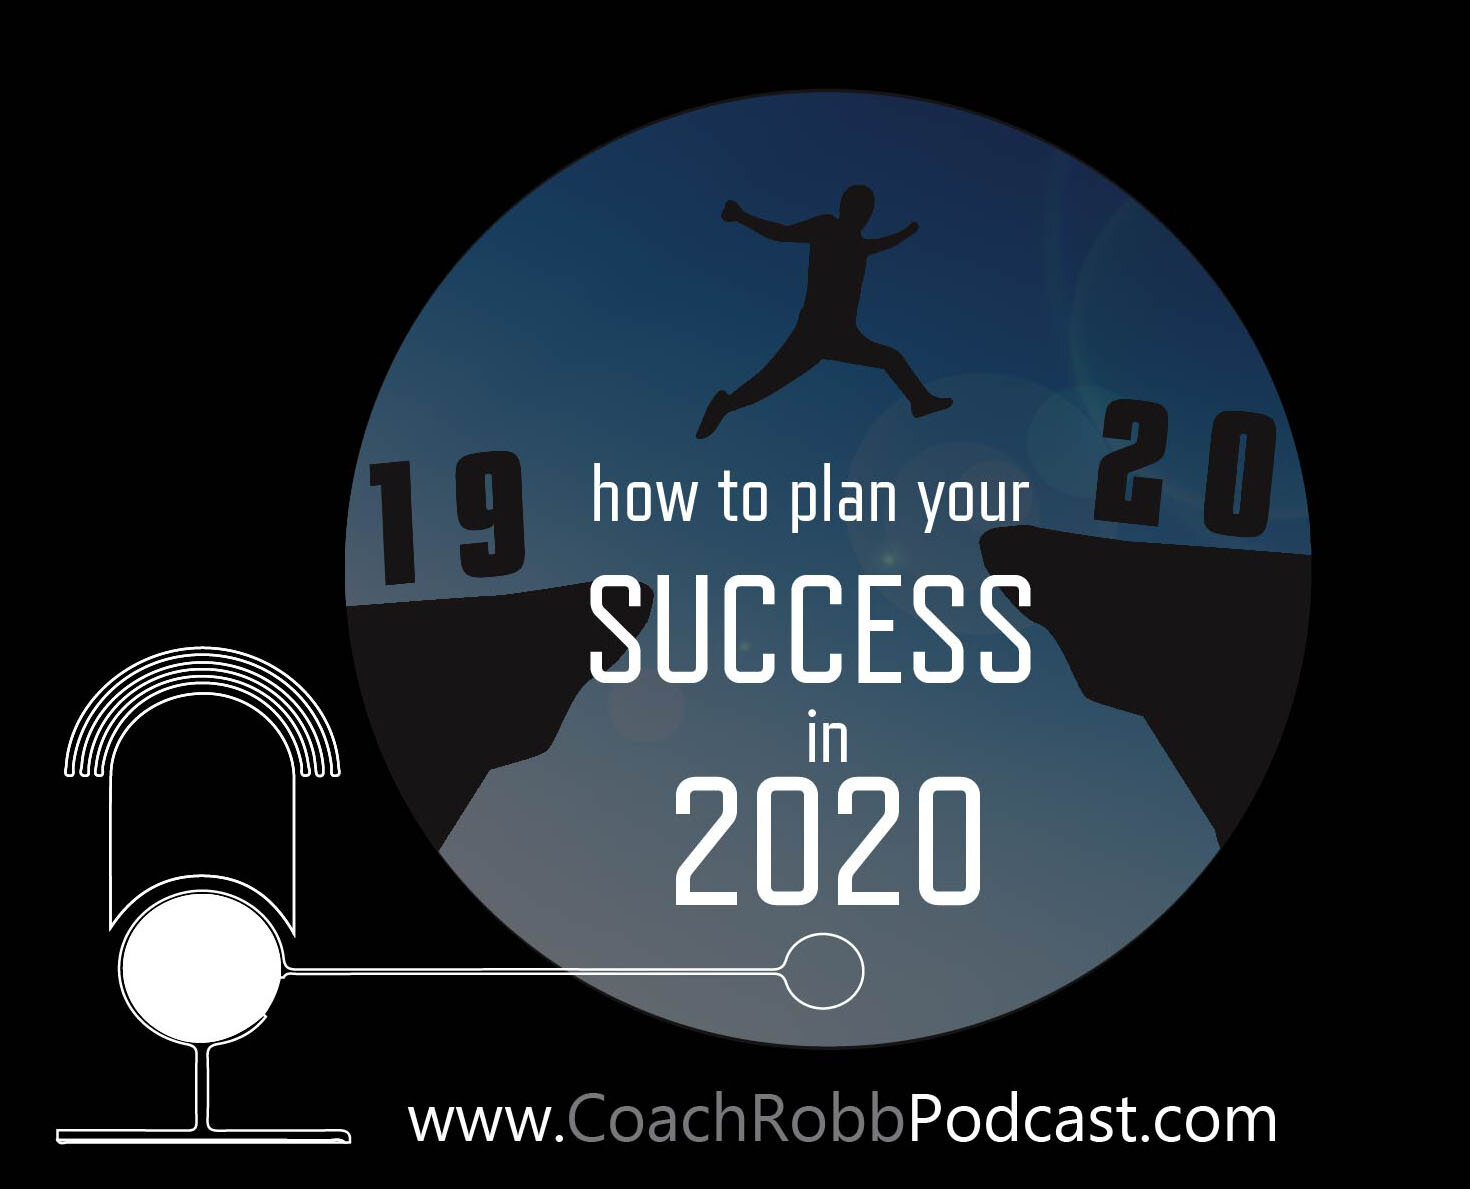 Coach Robb Podcast 41 – How to Plan Your Success in 2020!